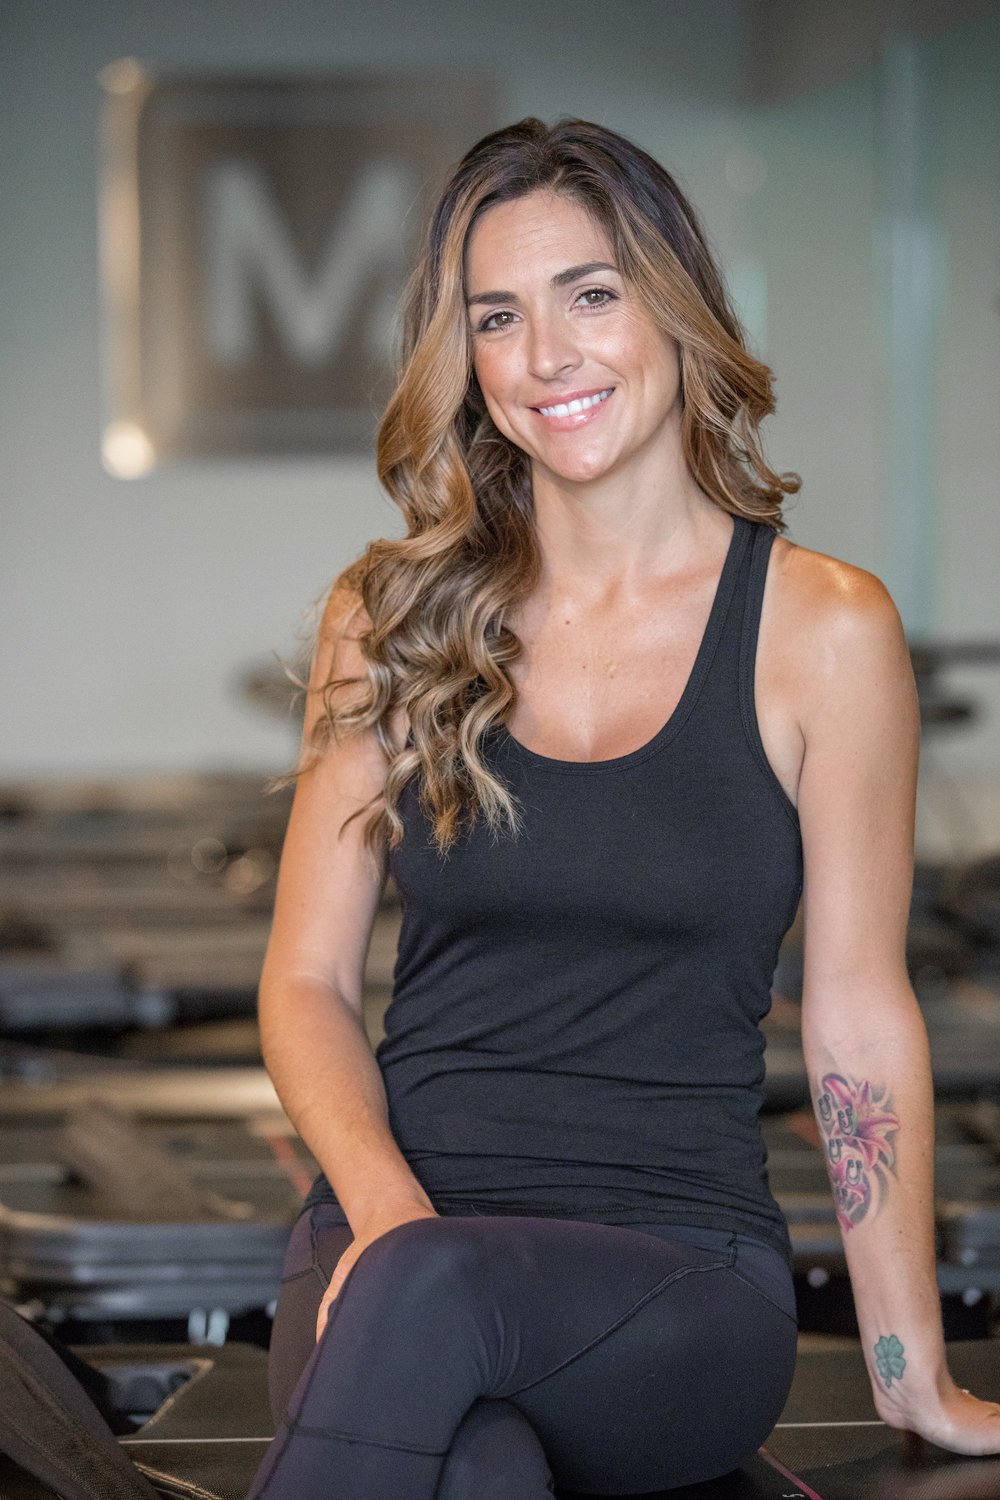 Stacy  | trainer   Hometown:  Burbank, Ca   I motivate for:  a Healthy Mind, Body and personal strength   Fave Mega Move:  Cobra   3 Things to Know:   1. I love my Mustangs!  I've had horses my whole life.  I grew up showing Dressage but now enjoy camping with them and my 2 pitbulls, Howlle Berry and Droolia Roberts.    2. I love DIY projects  3. I was in Show Choir in High School and studied dance in college.   @stacywhite26